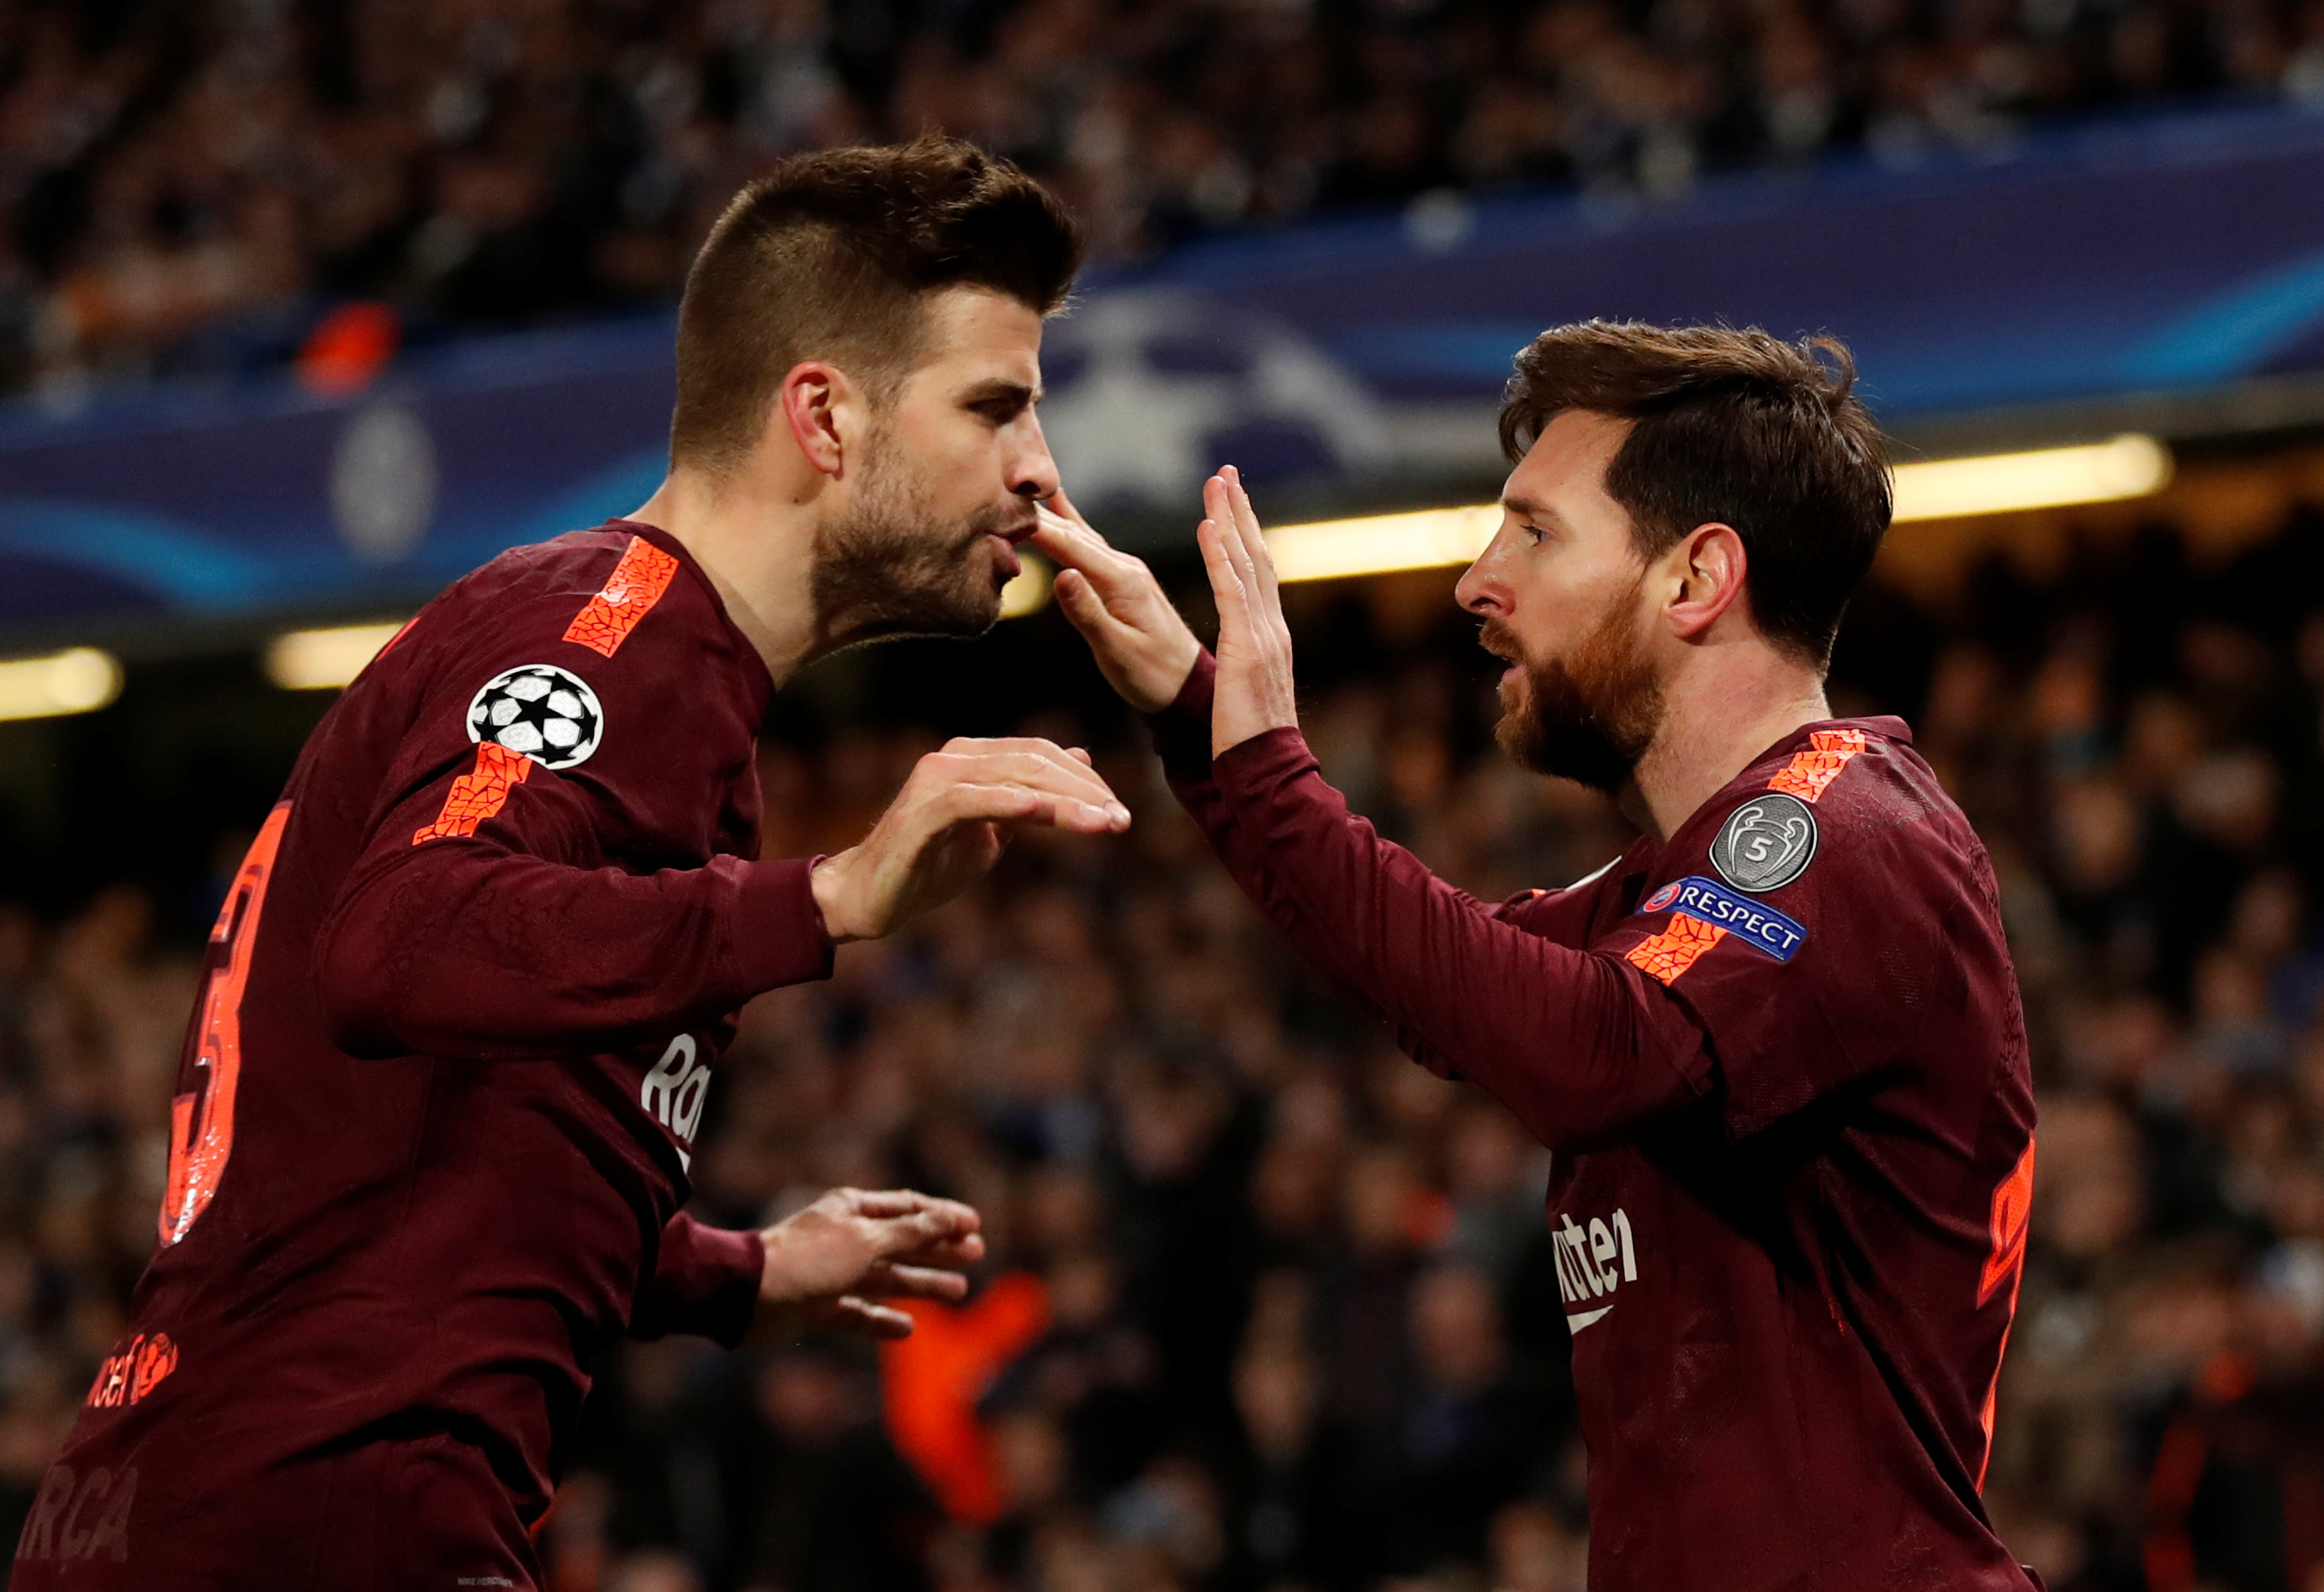 Soccer Football - Champions League Round of 16 First Leg - Chelsea vs FC Barcelona - Stamford Bridge, London, Britain - February 20, 2018   Barcelonau2019s Lionel Messi celebrates scoring their first goal with Gerard Pique                                Action Images via Reuters/Andrew Boyers